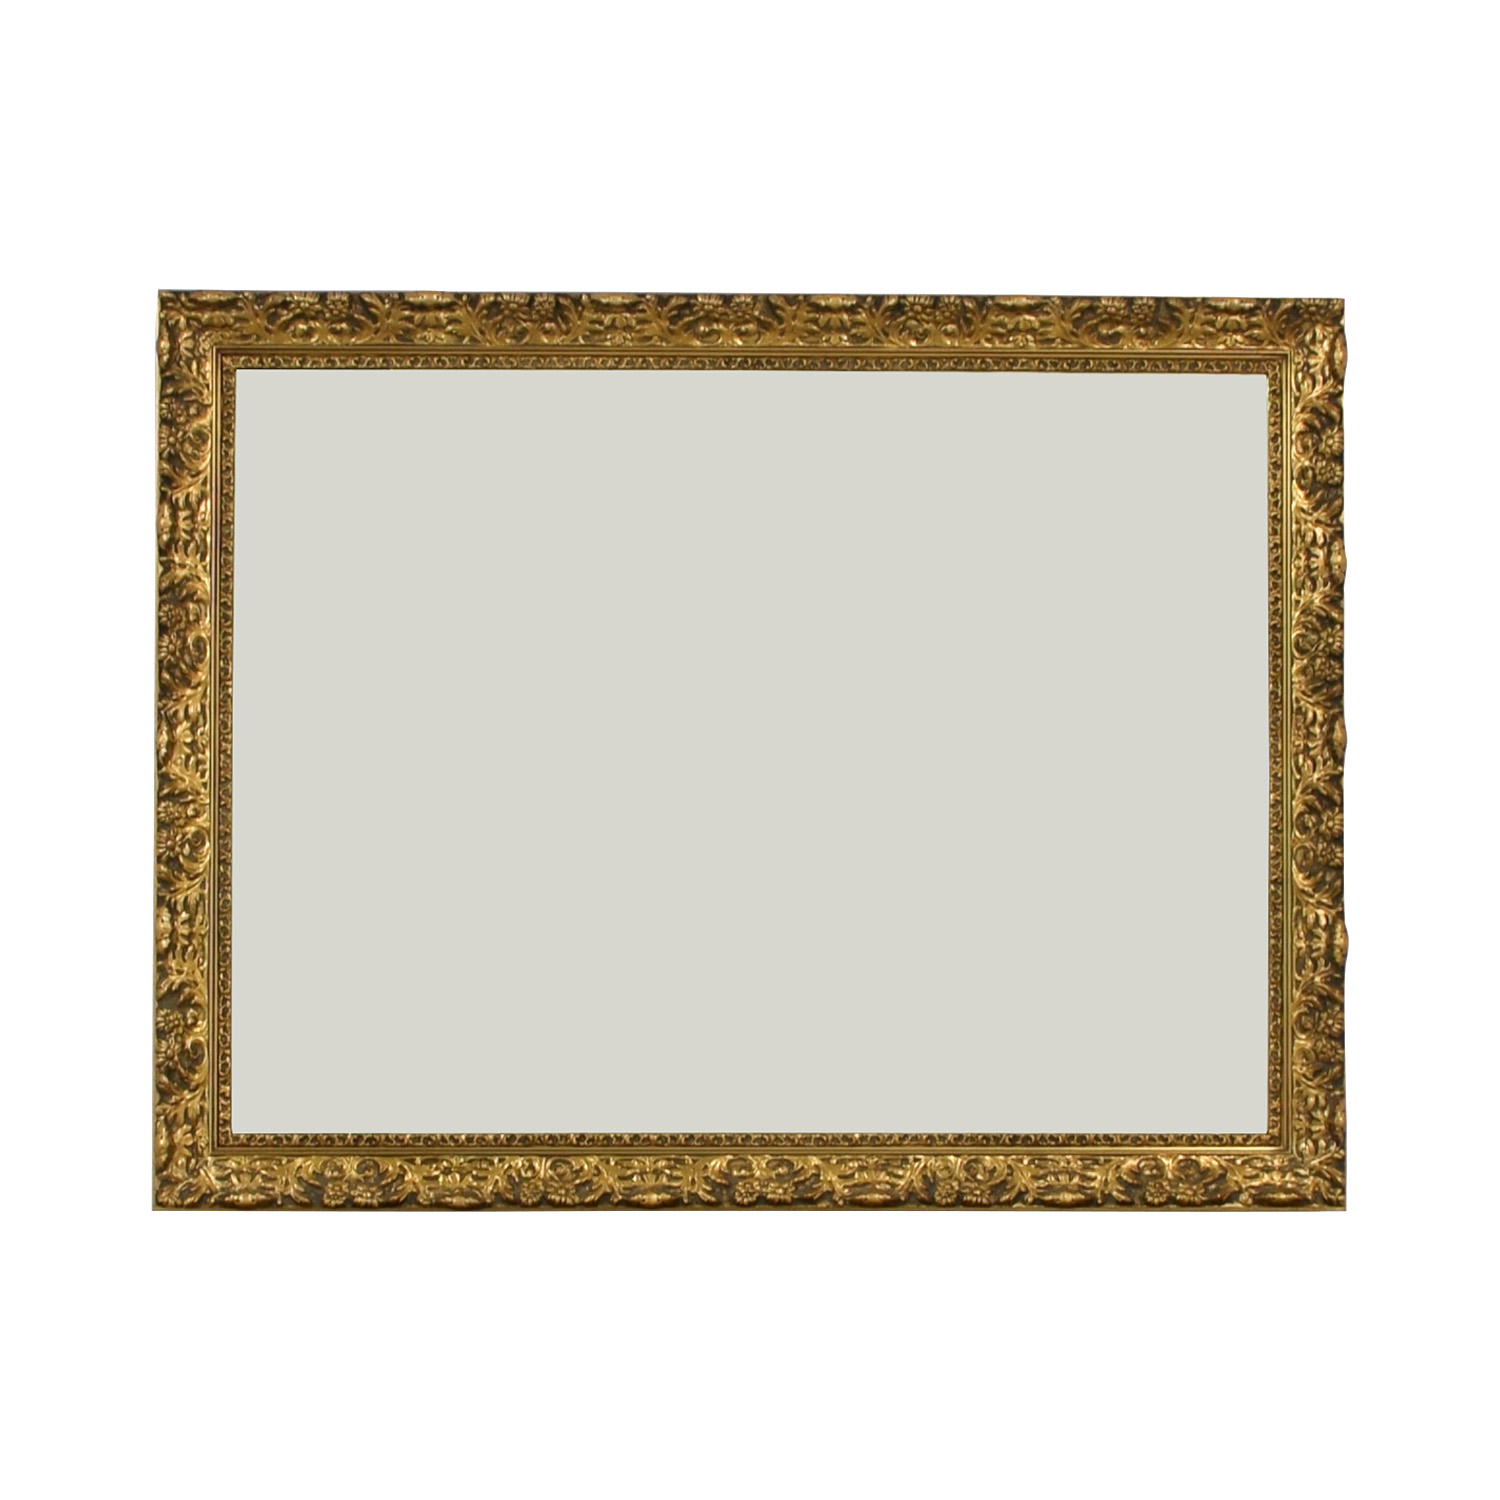 Sterling Framing Gold Mirror price